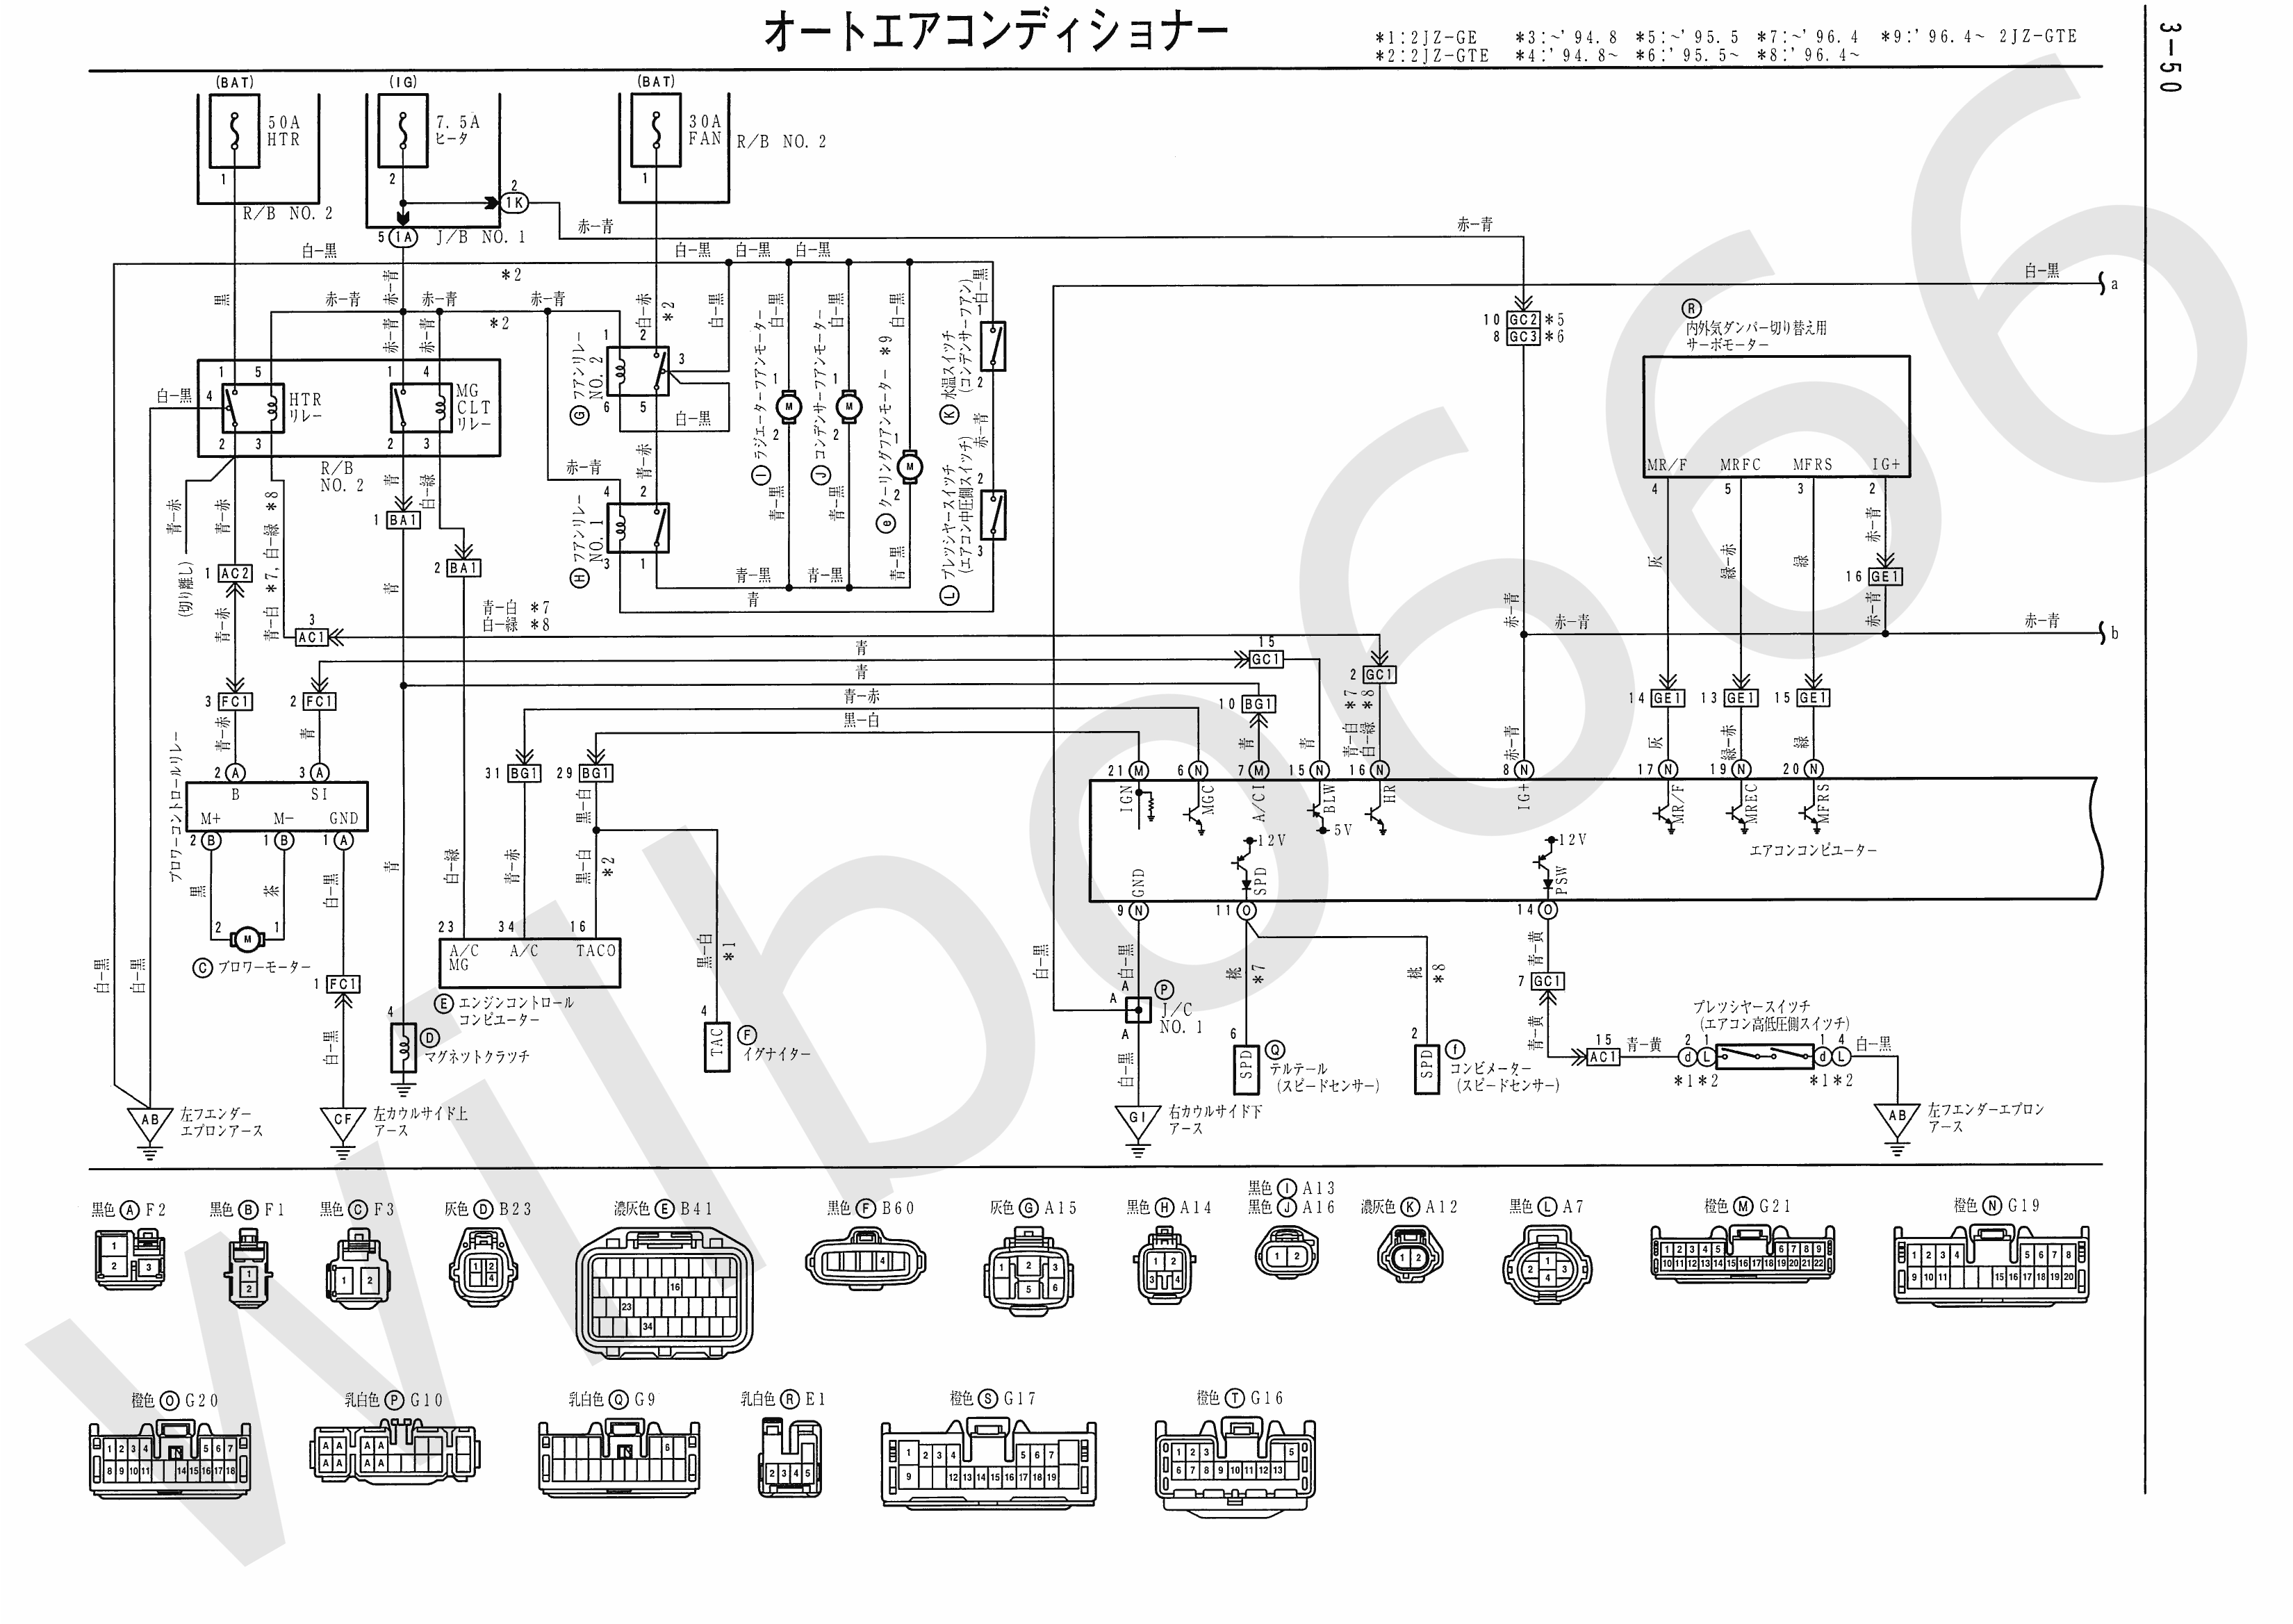 jz ge ecu wiring diagram wilbo666 2jz ge jza80 supra engine wiring jza80 electrical wiring diagram book 6742505